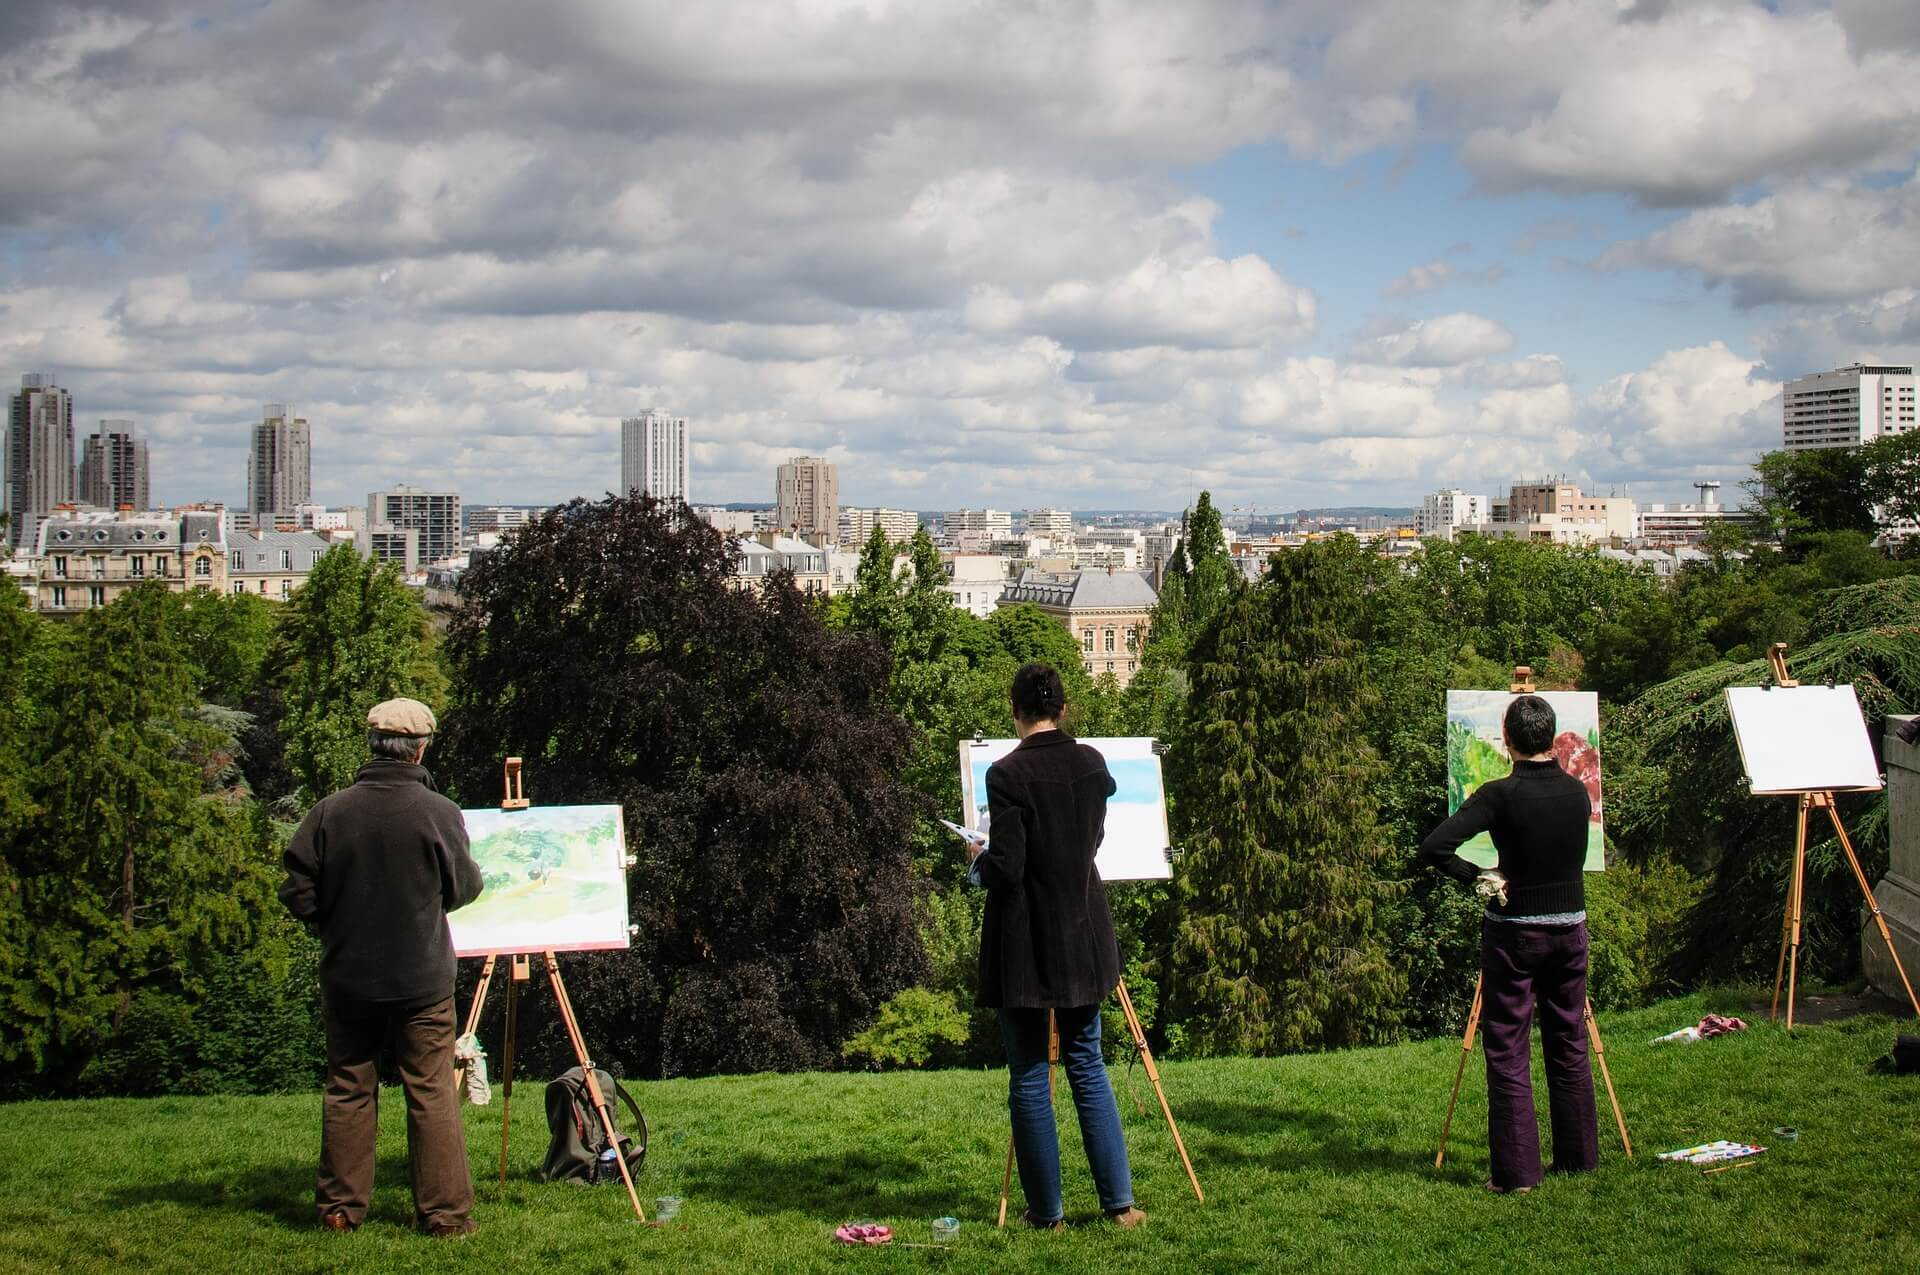 Buttes-Chaumont Park - A beautiful outdoor place to visit in Paris